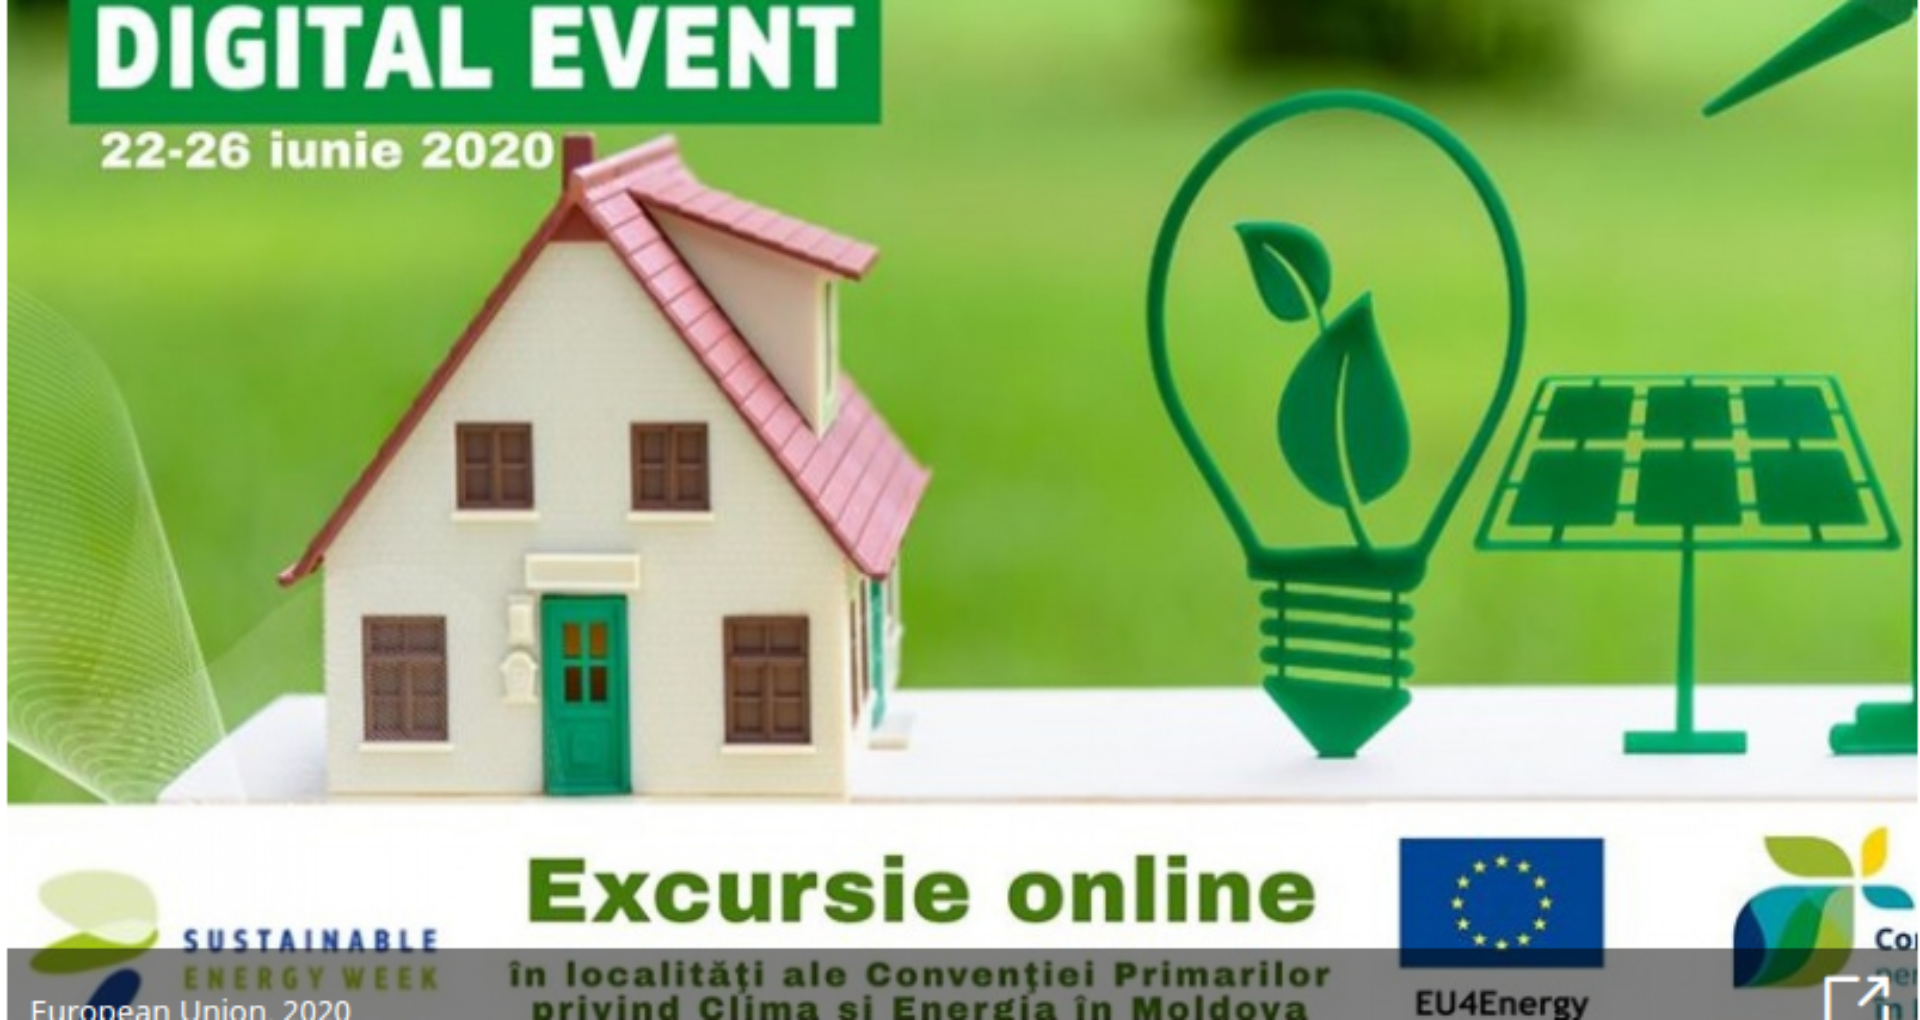 Moldova Offers Virtual Tours of its Cities During the EU Sustainable Energy Week